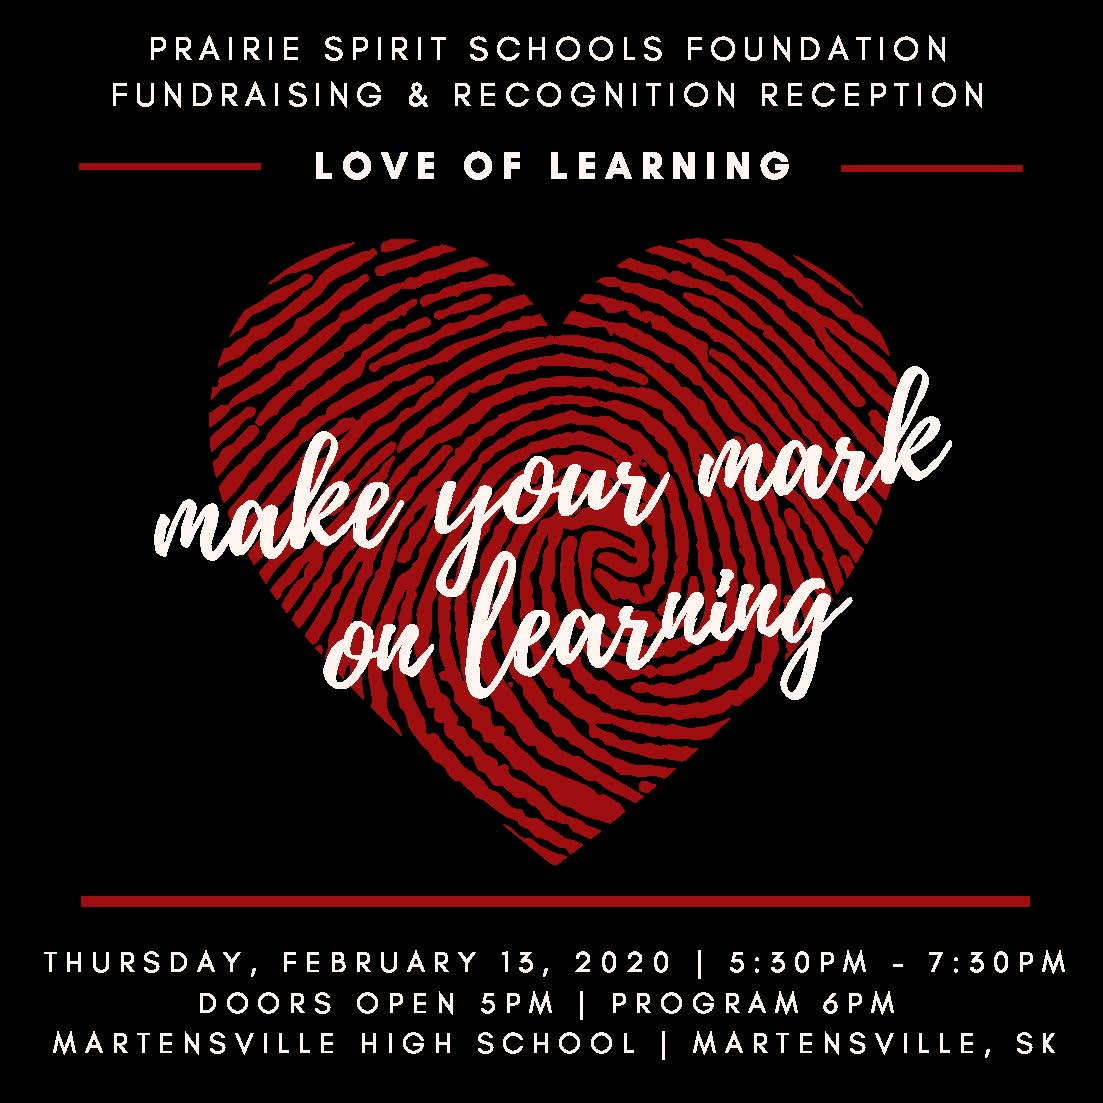 PSSF Love of Learning Reception